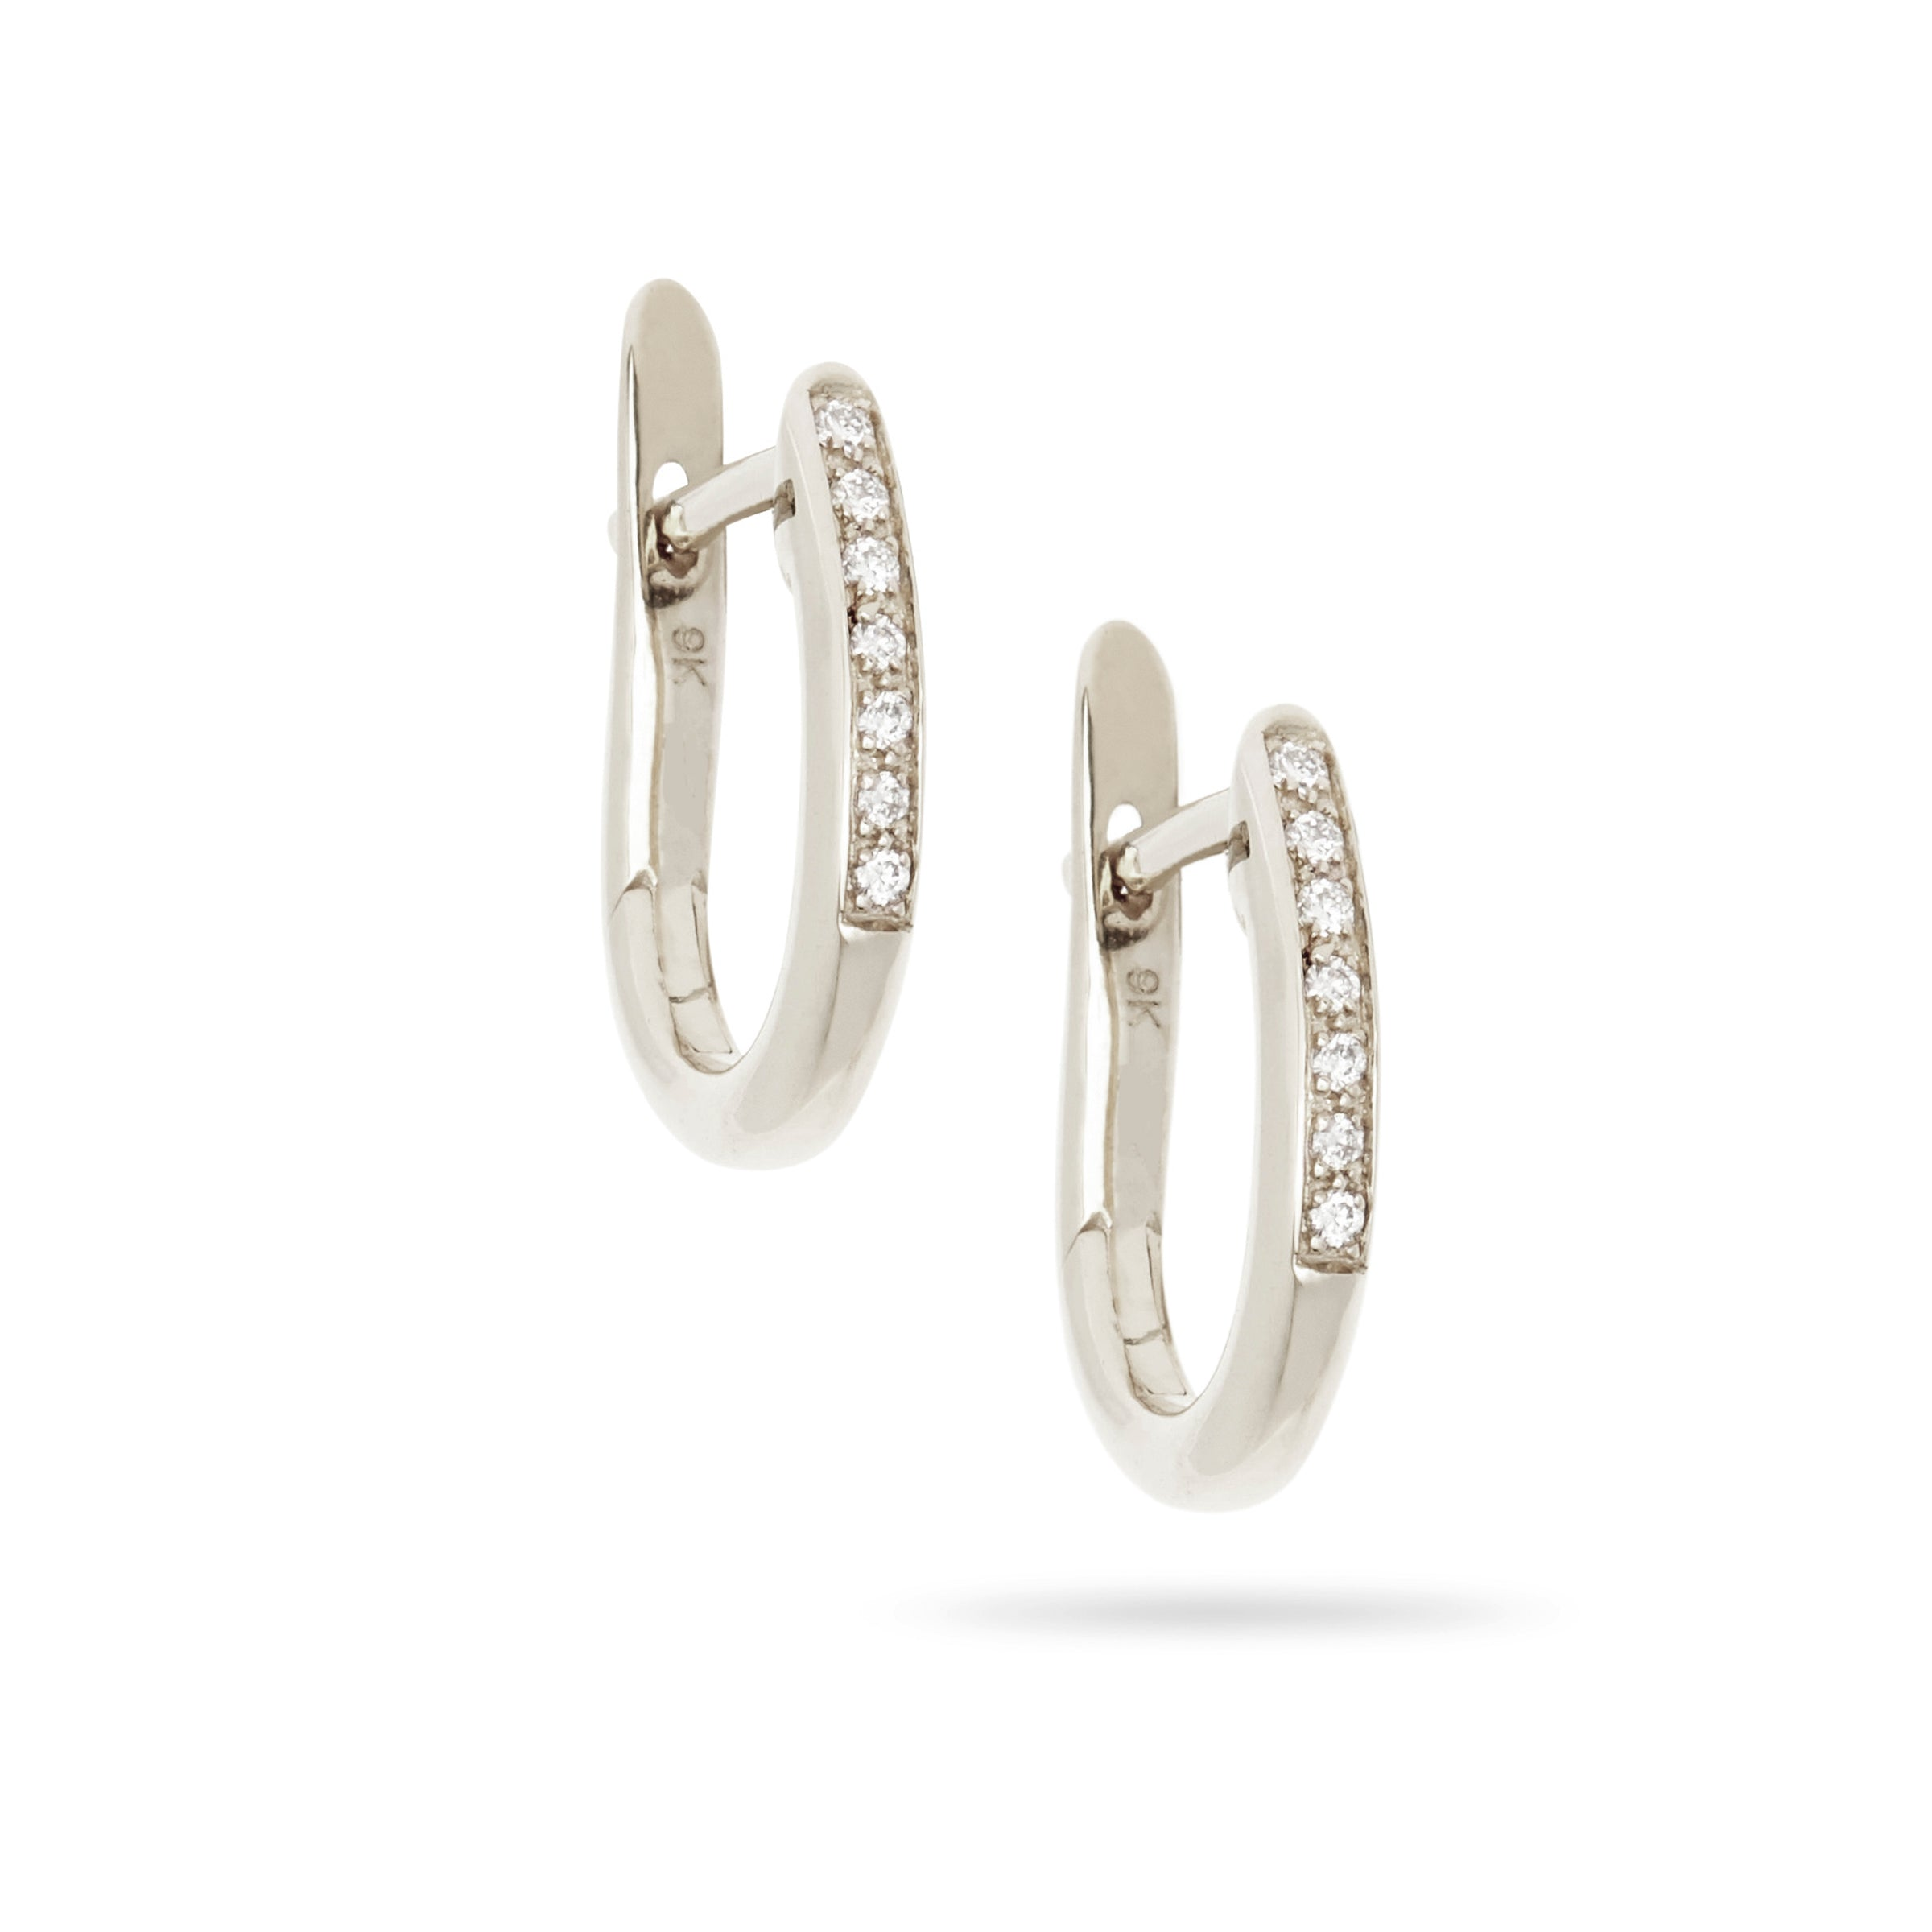 White Gold Diamond Hoop Earrings by Luke Rose